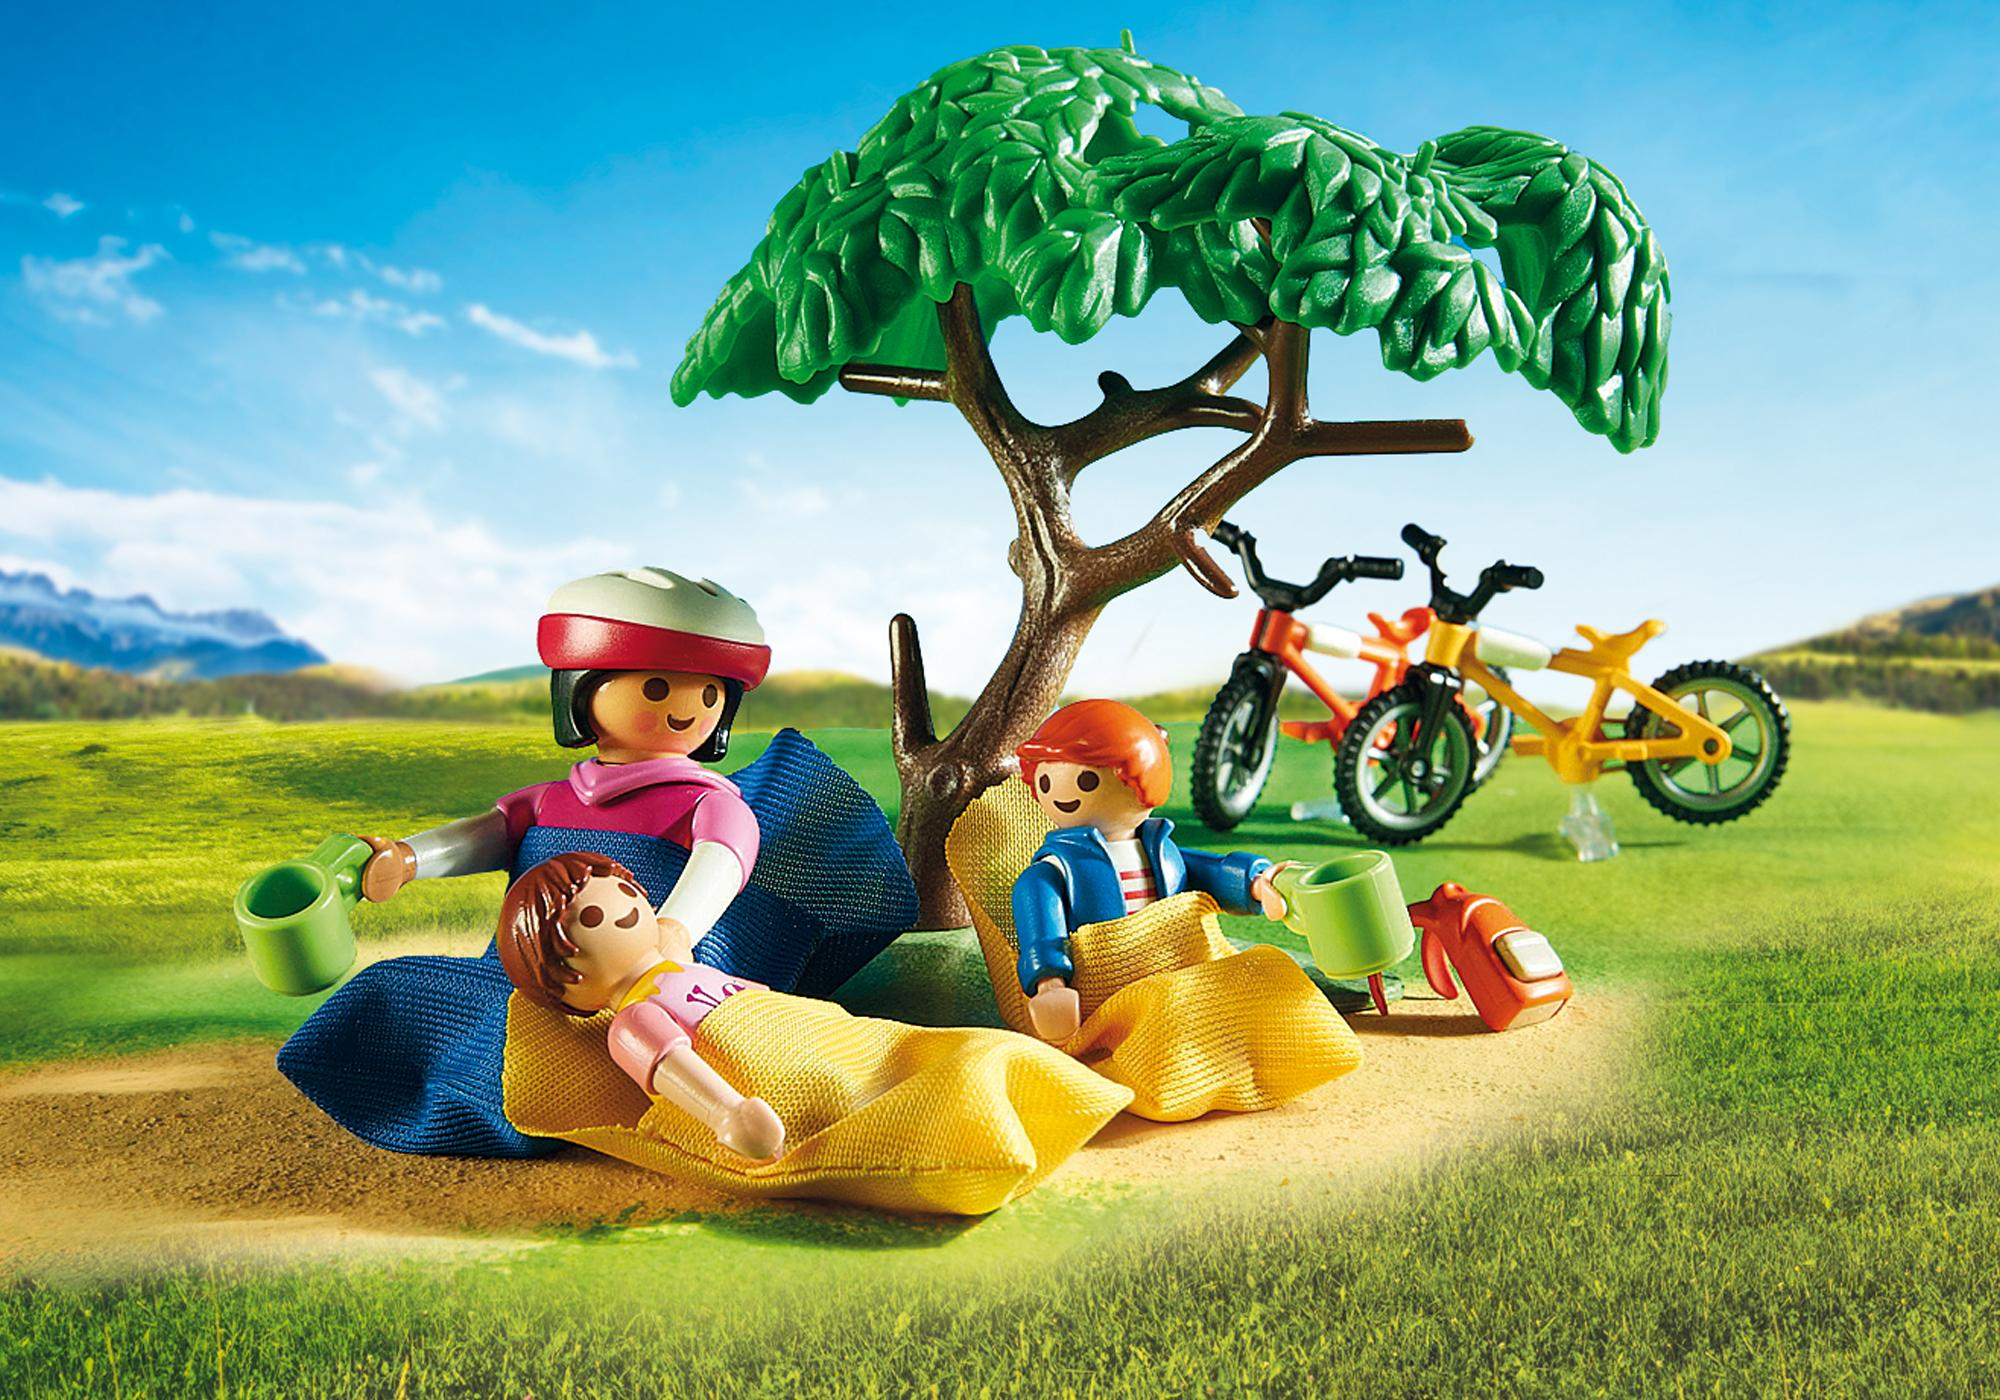 http://media.playmobil.com/i/playmobil/6890_product_extra1